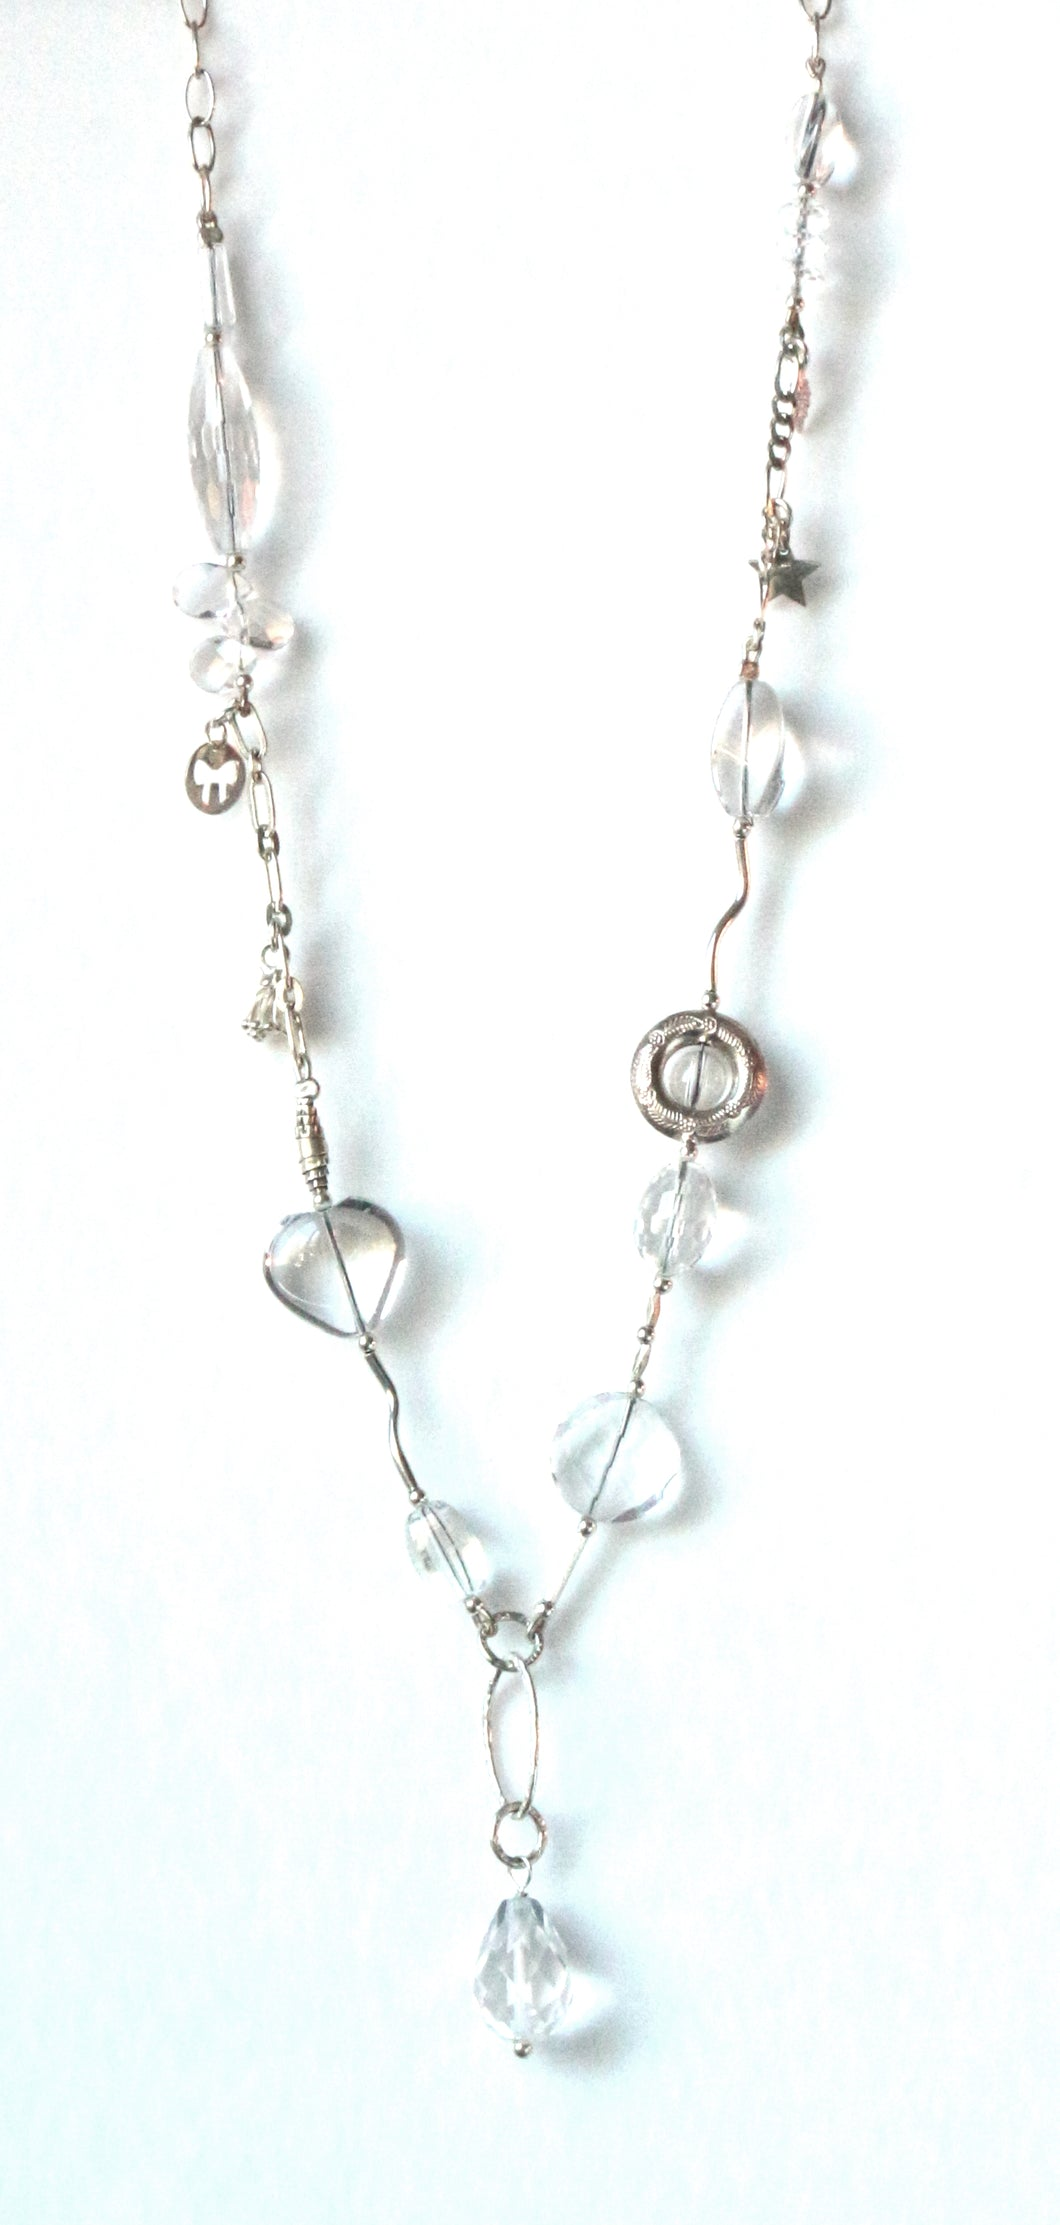 Australian Handmade Crystal Quartz Necklace with Sterling Silver